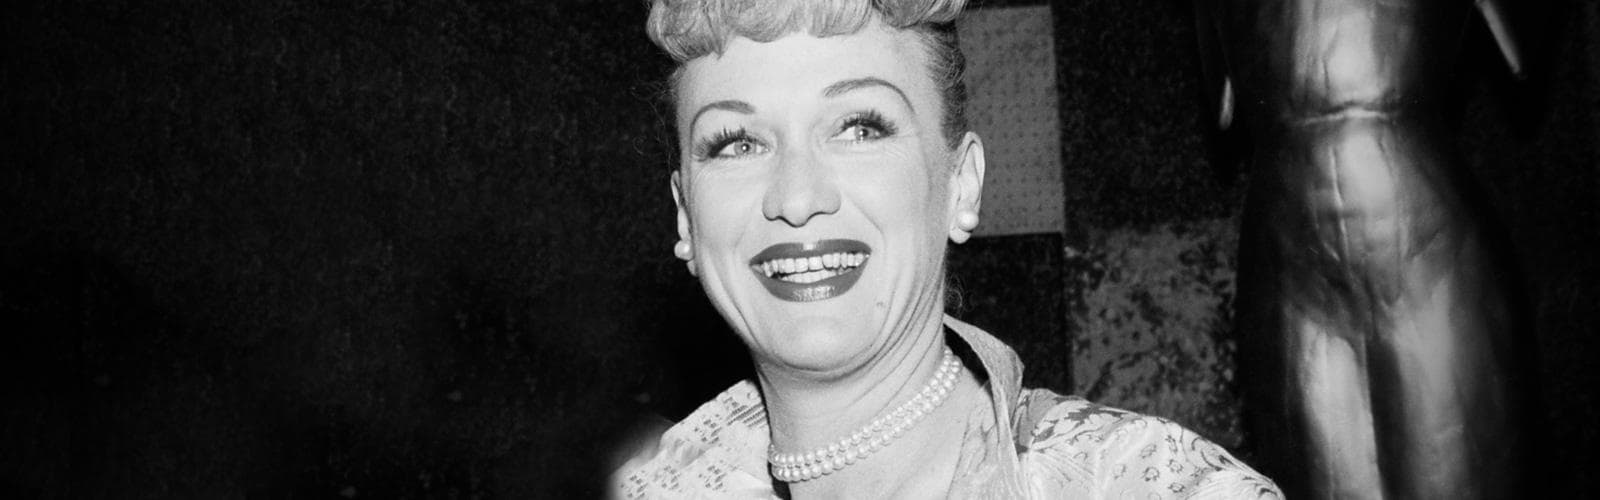 Eve Arden Desktop wallpaper